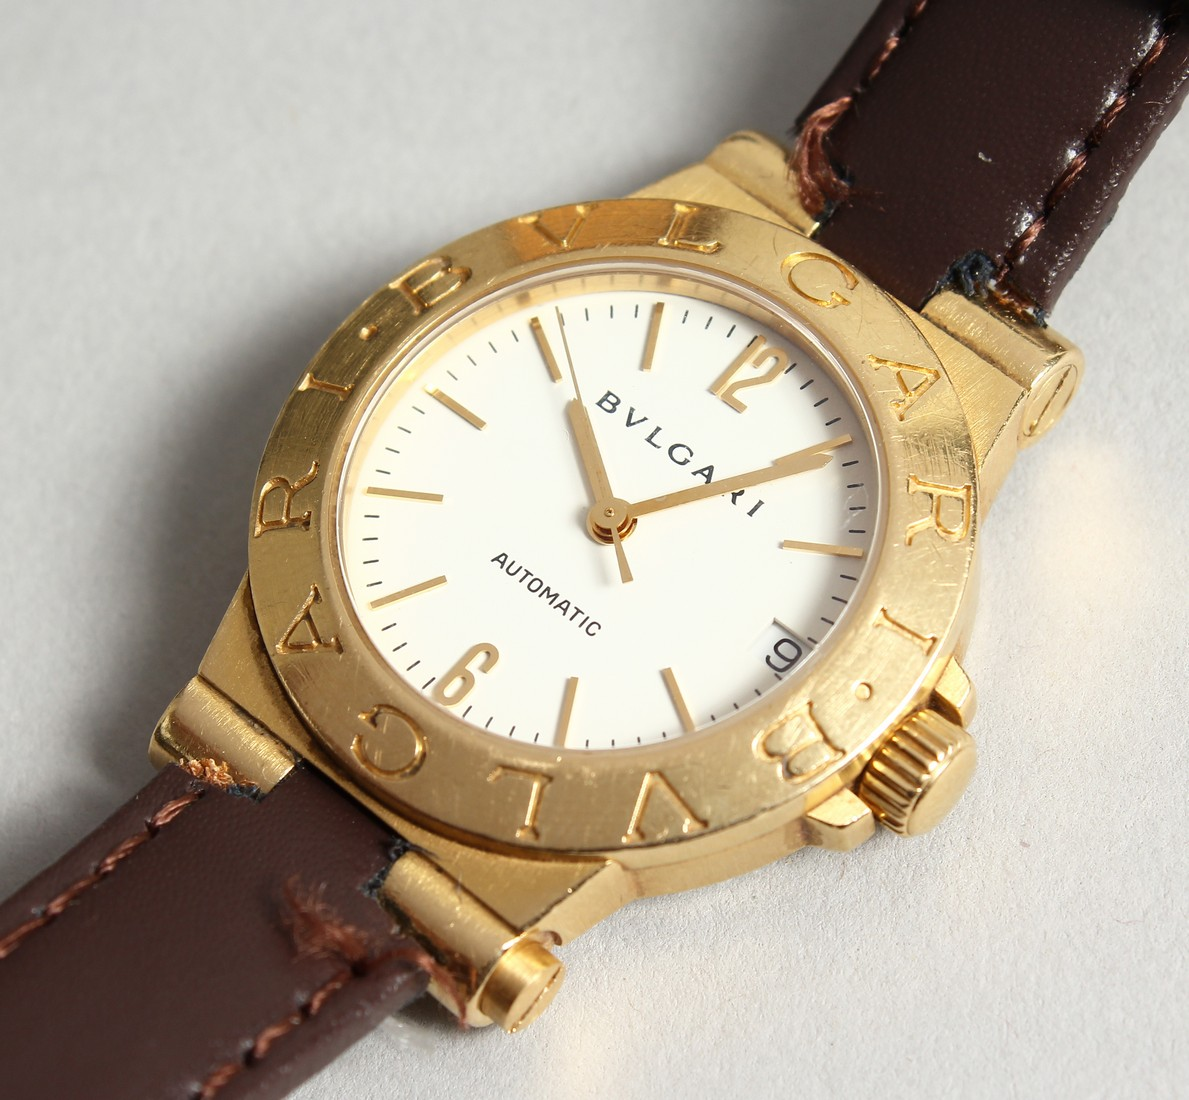 AN 18CT. GOLD BULGARI WRIST WATCH with leather strap, in original box.